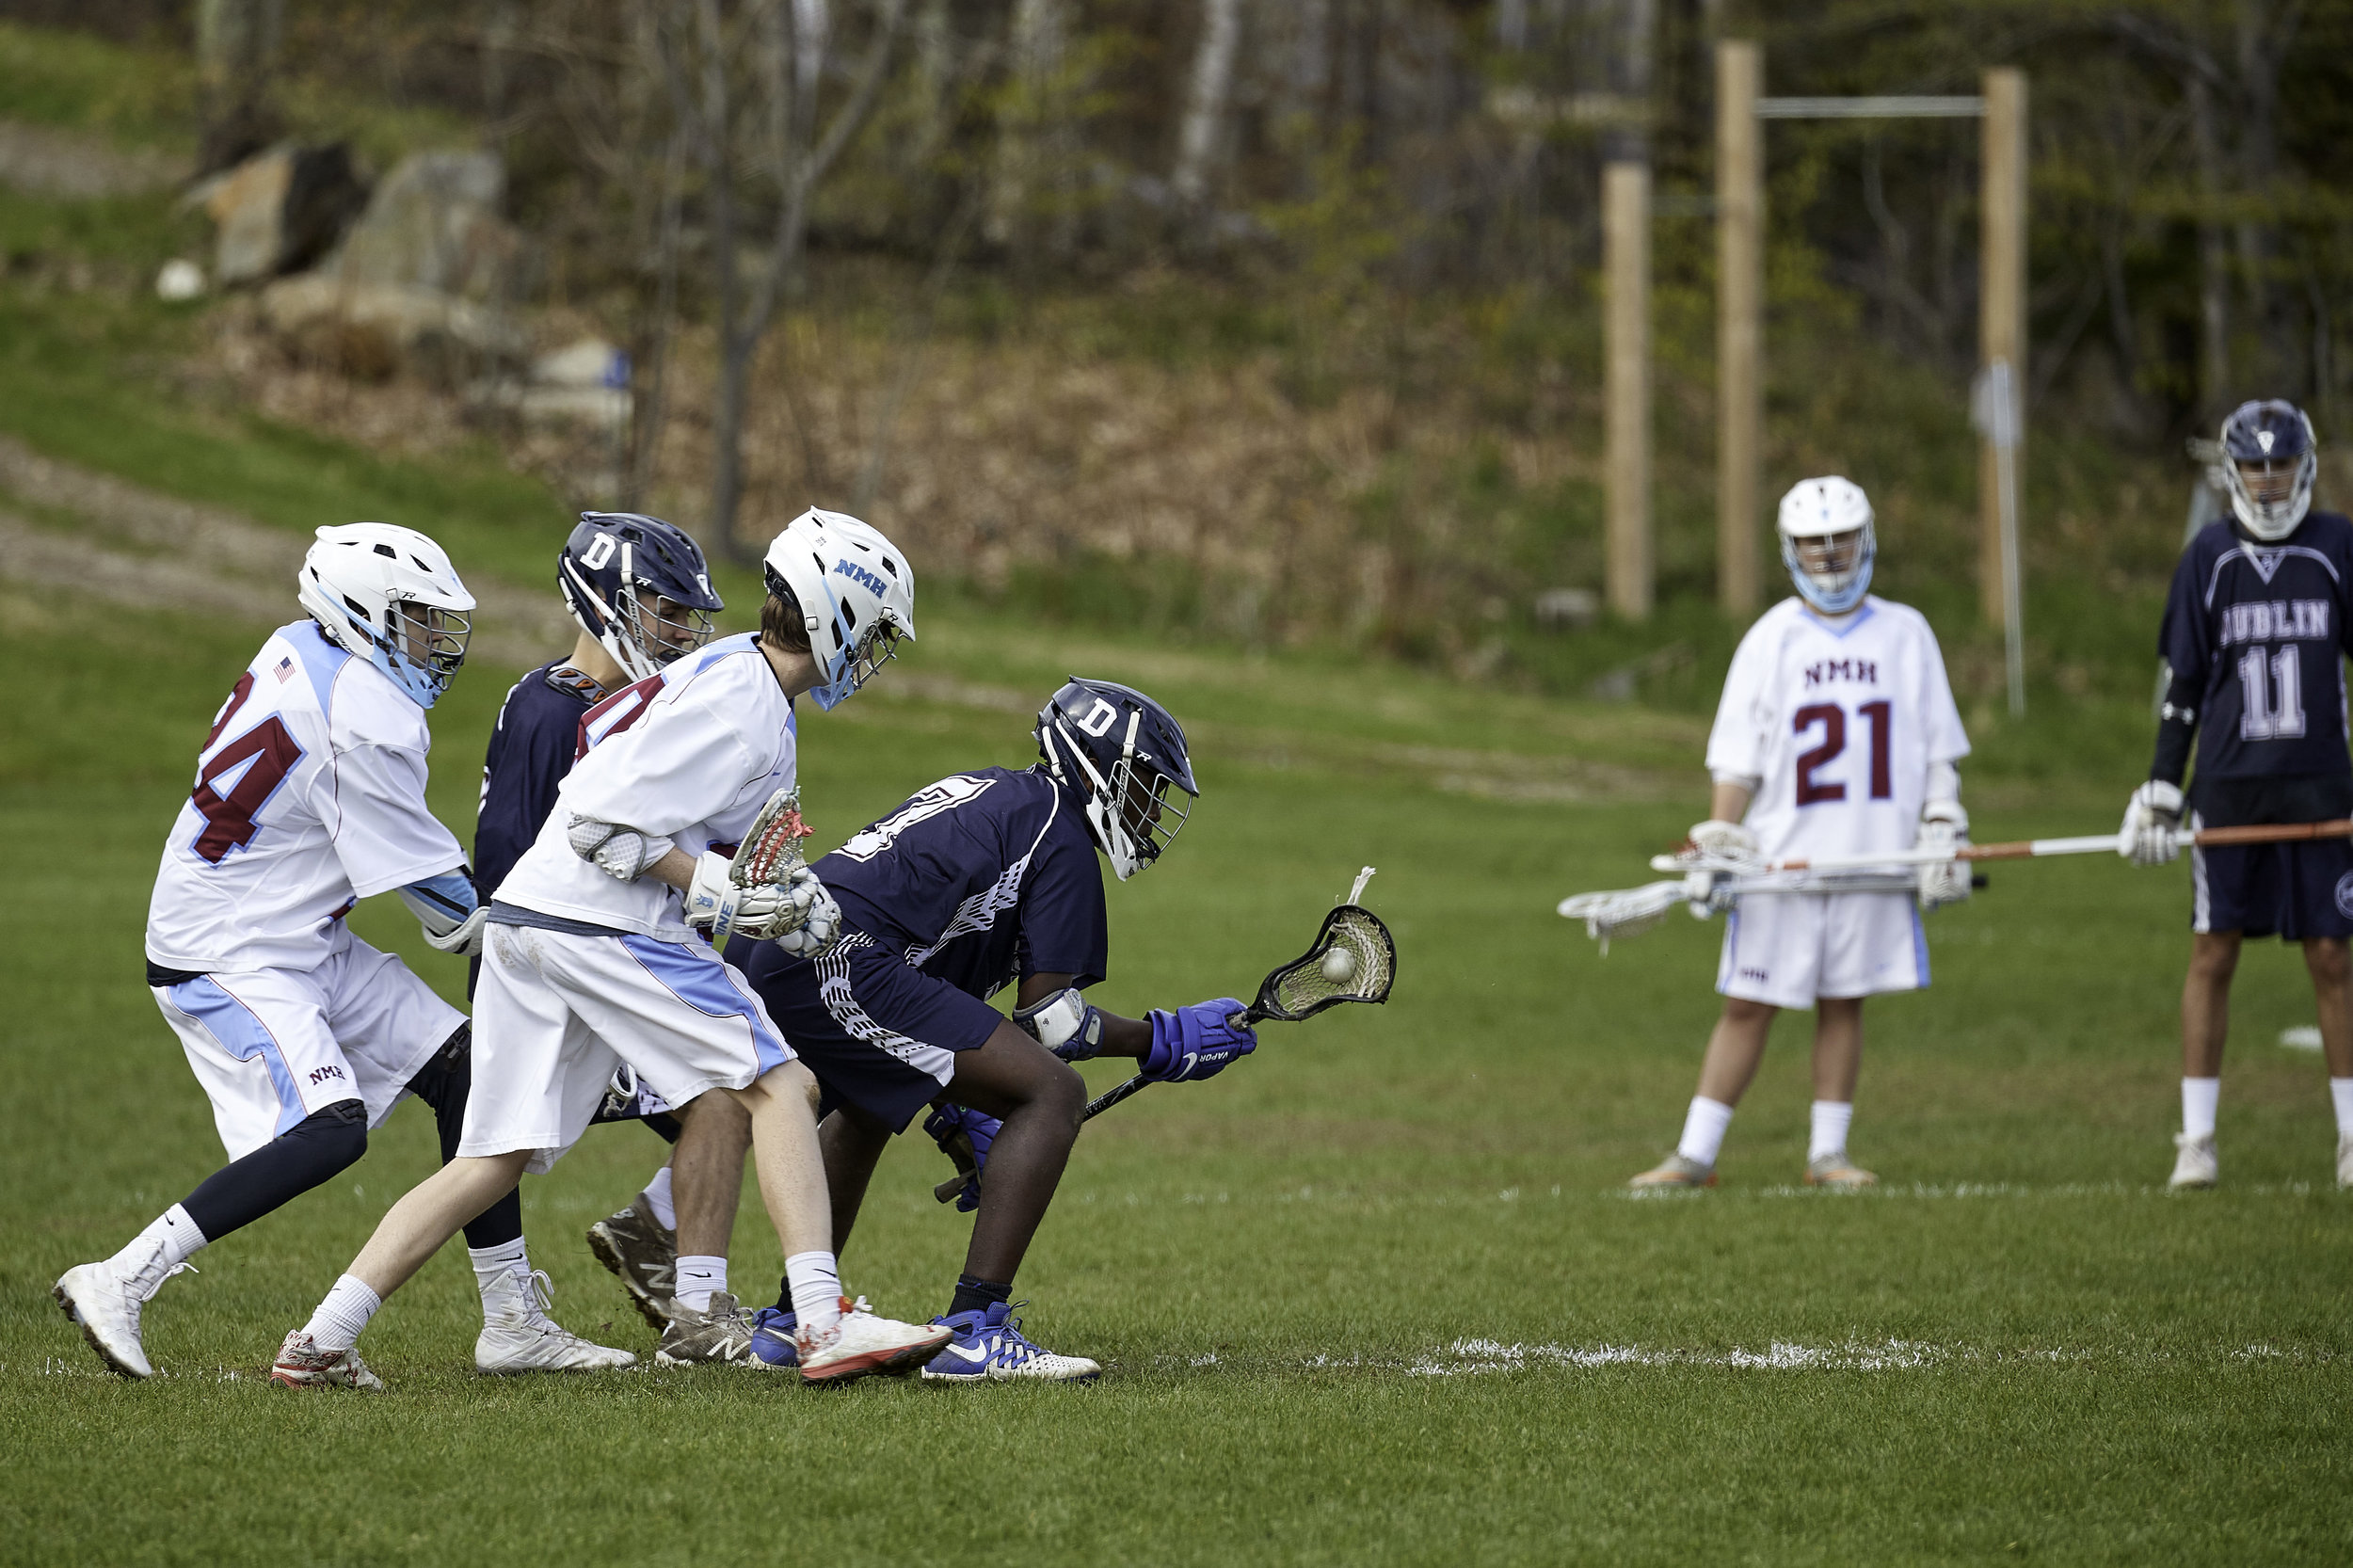 Boys Lax vs Northfield Mount Hermon JV - May 15 2019 - 0029.jpg